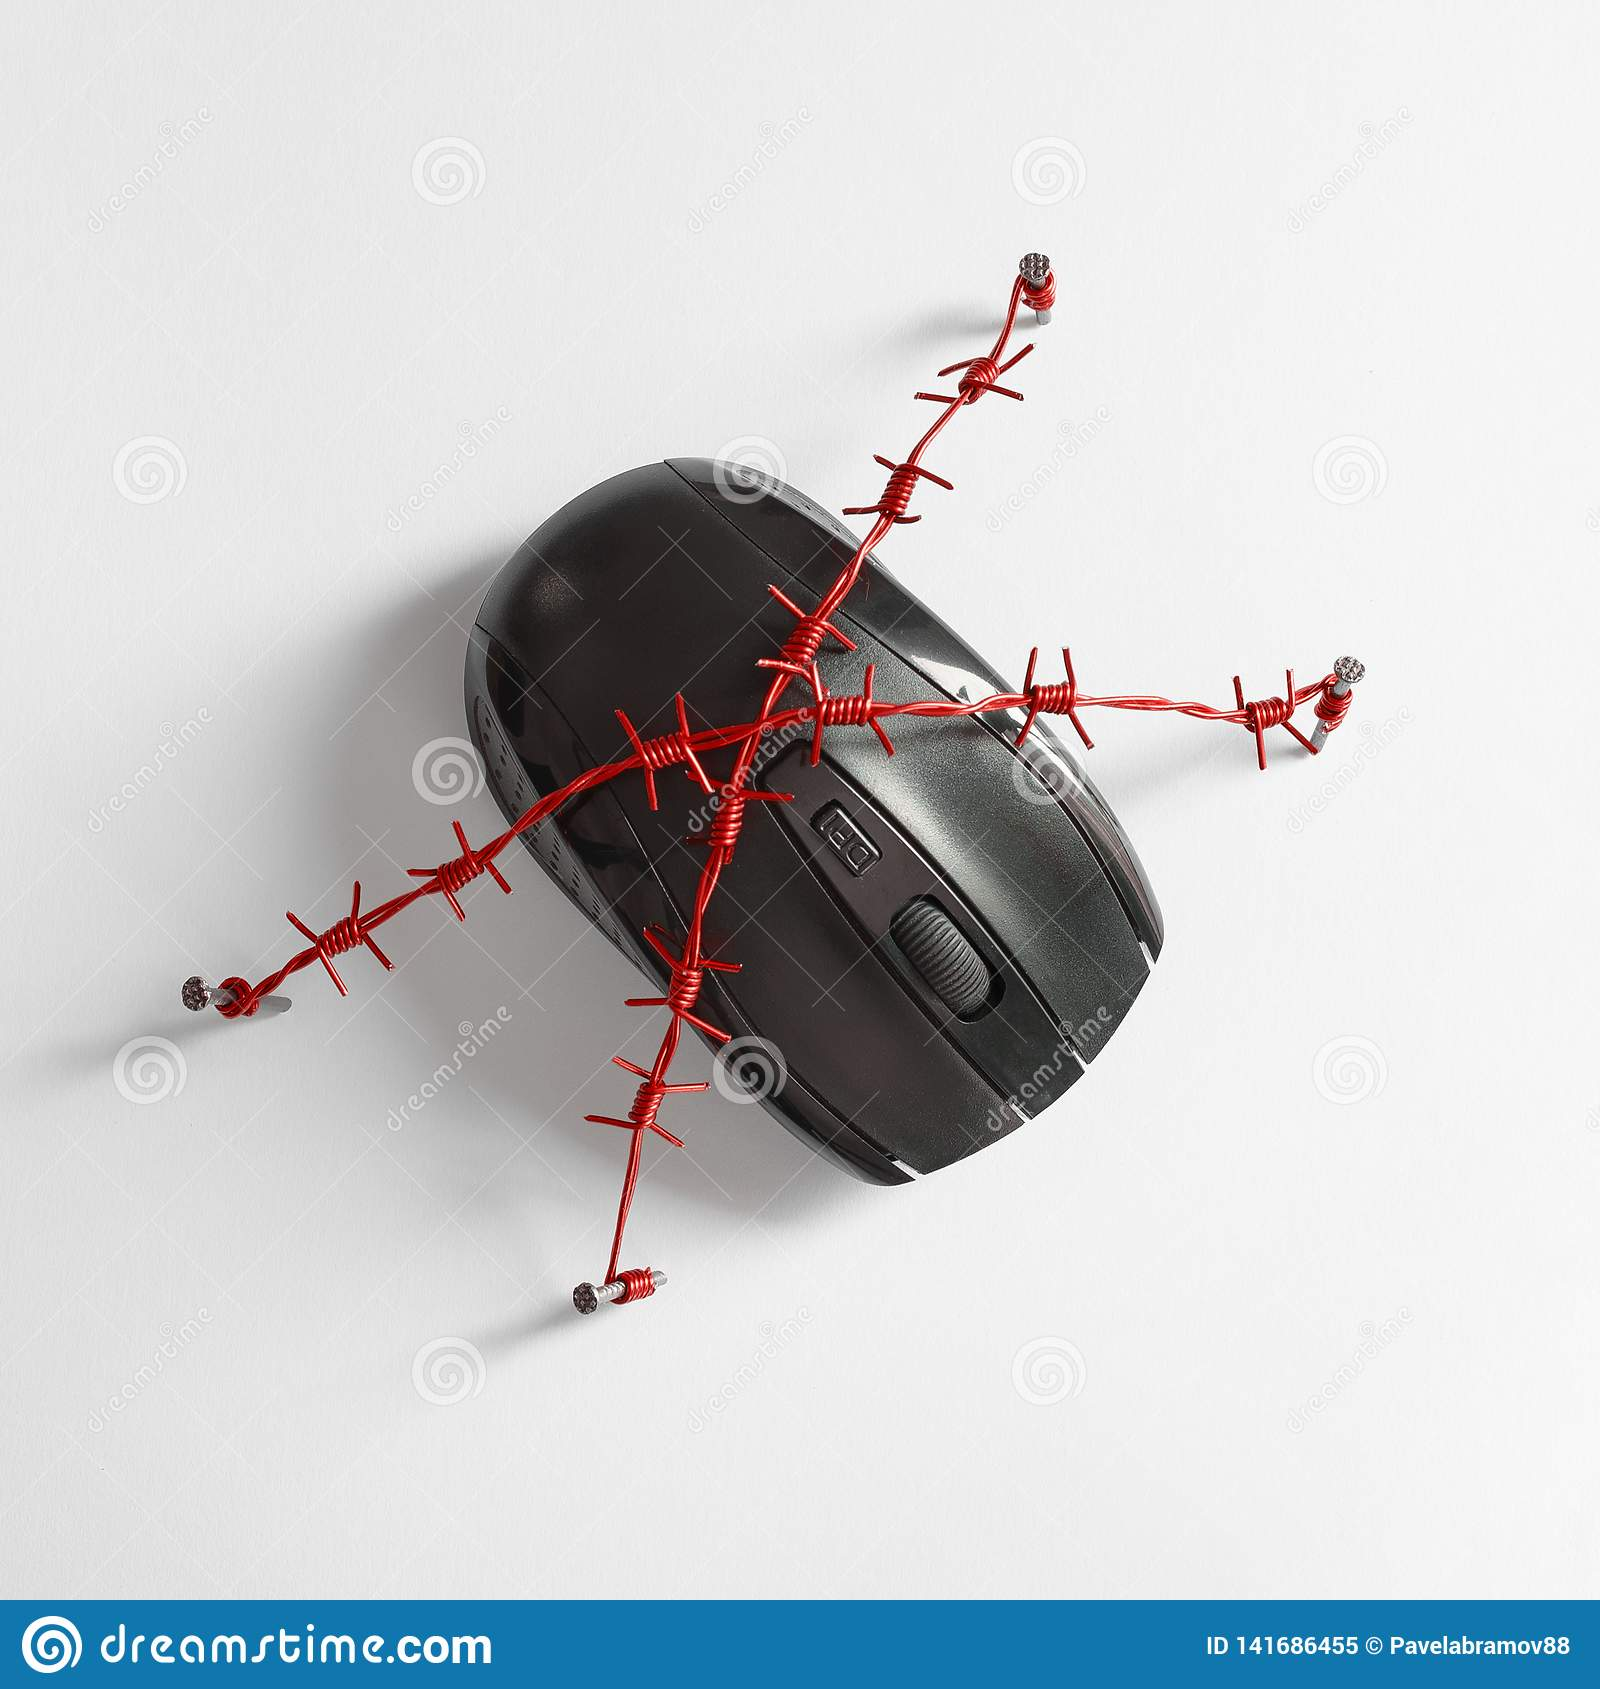 Mouse with red barbed wire. Concept for the theme of human dependence on social networks, the Internet and gaming addiction